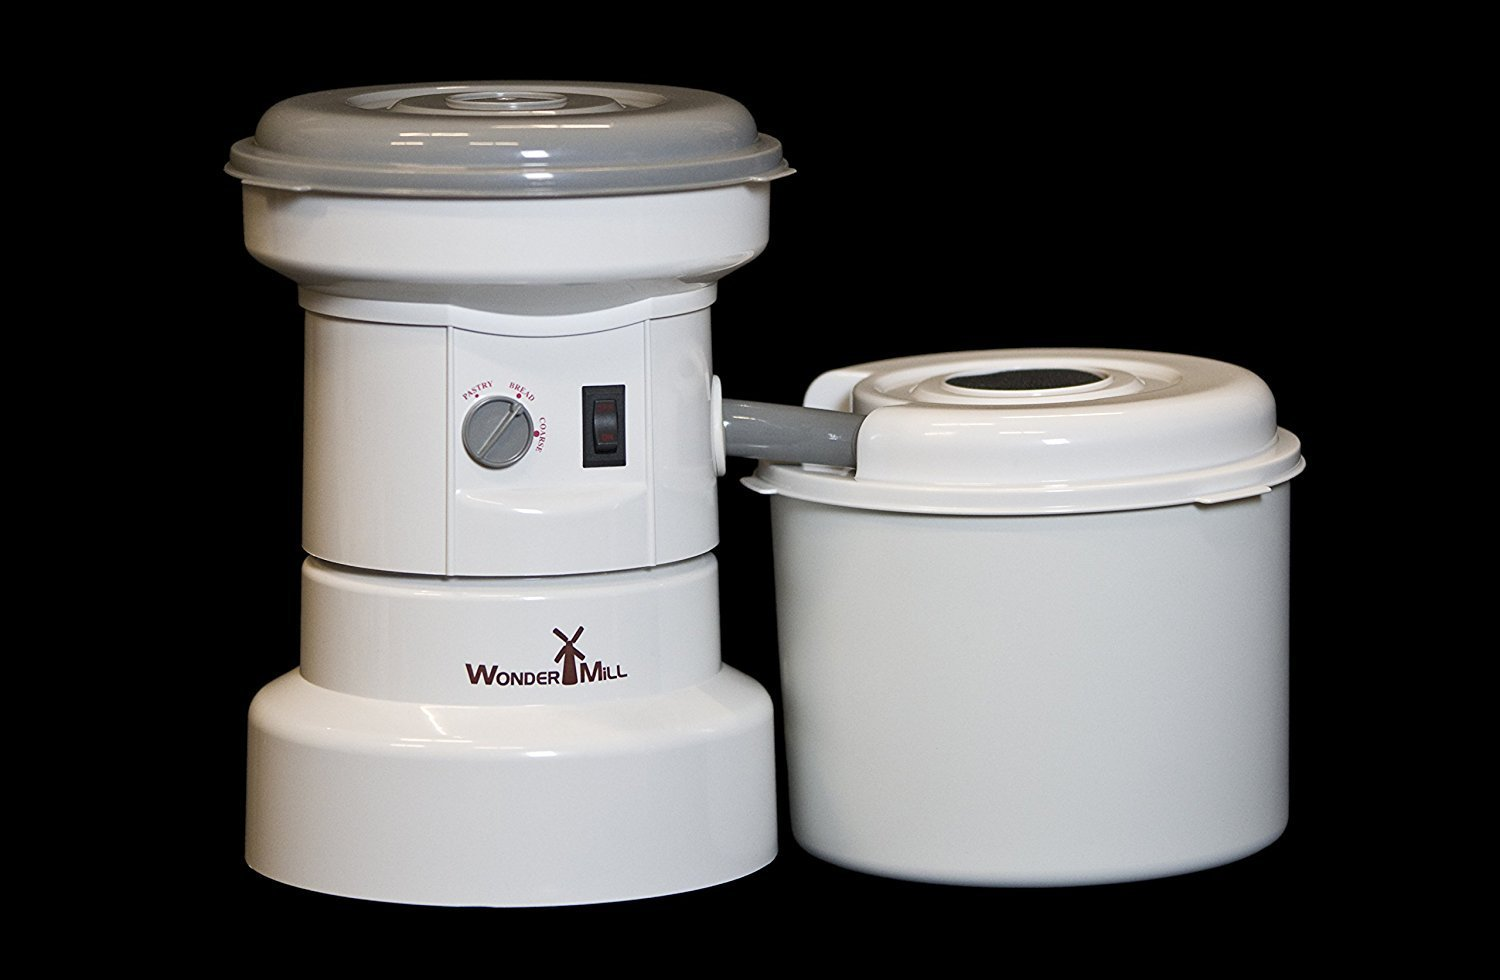 WonderMill Electric Grain Grinder - Grain Mill (110 V) by Wondermill (Image #6)